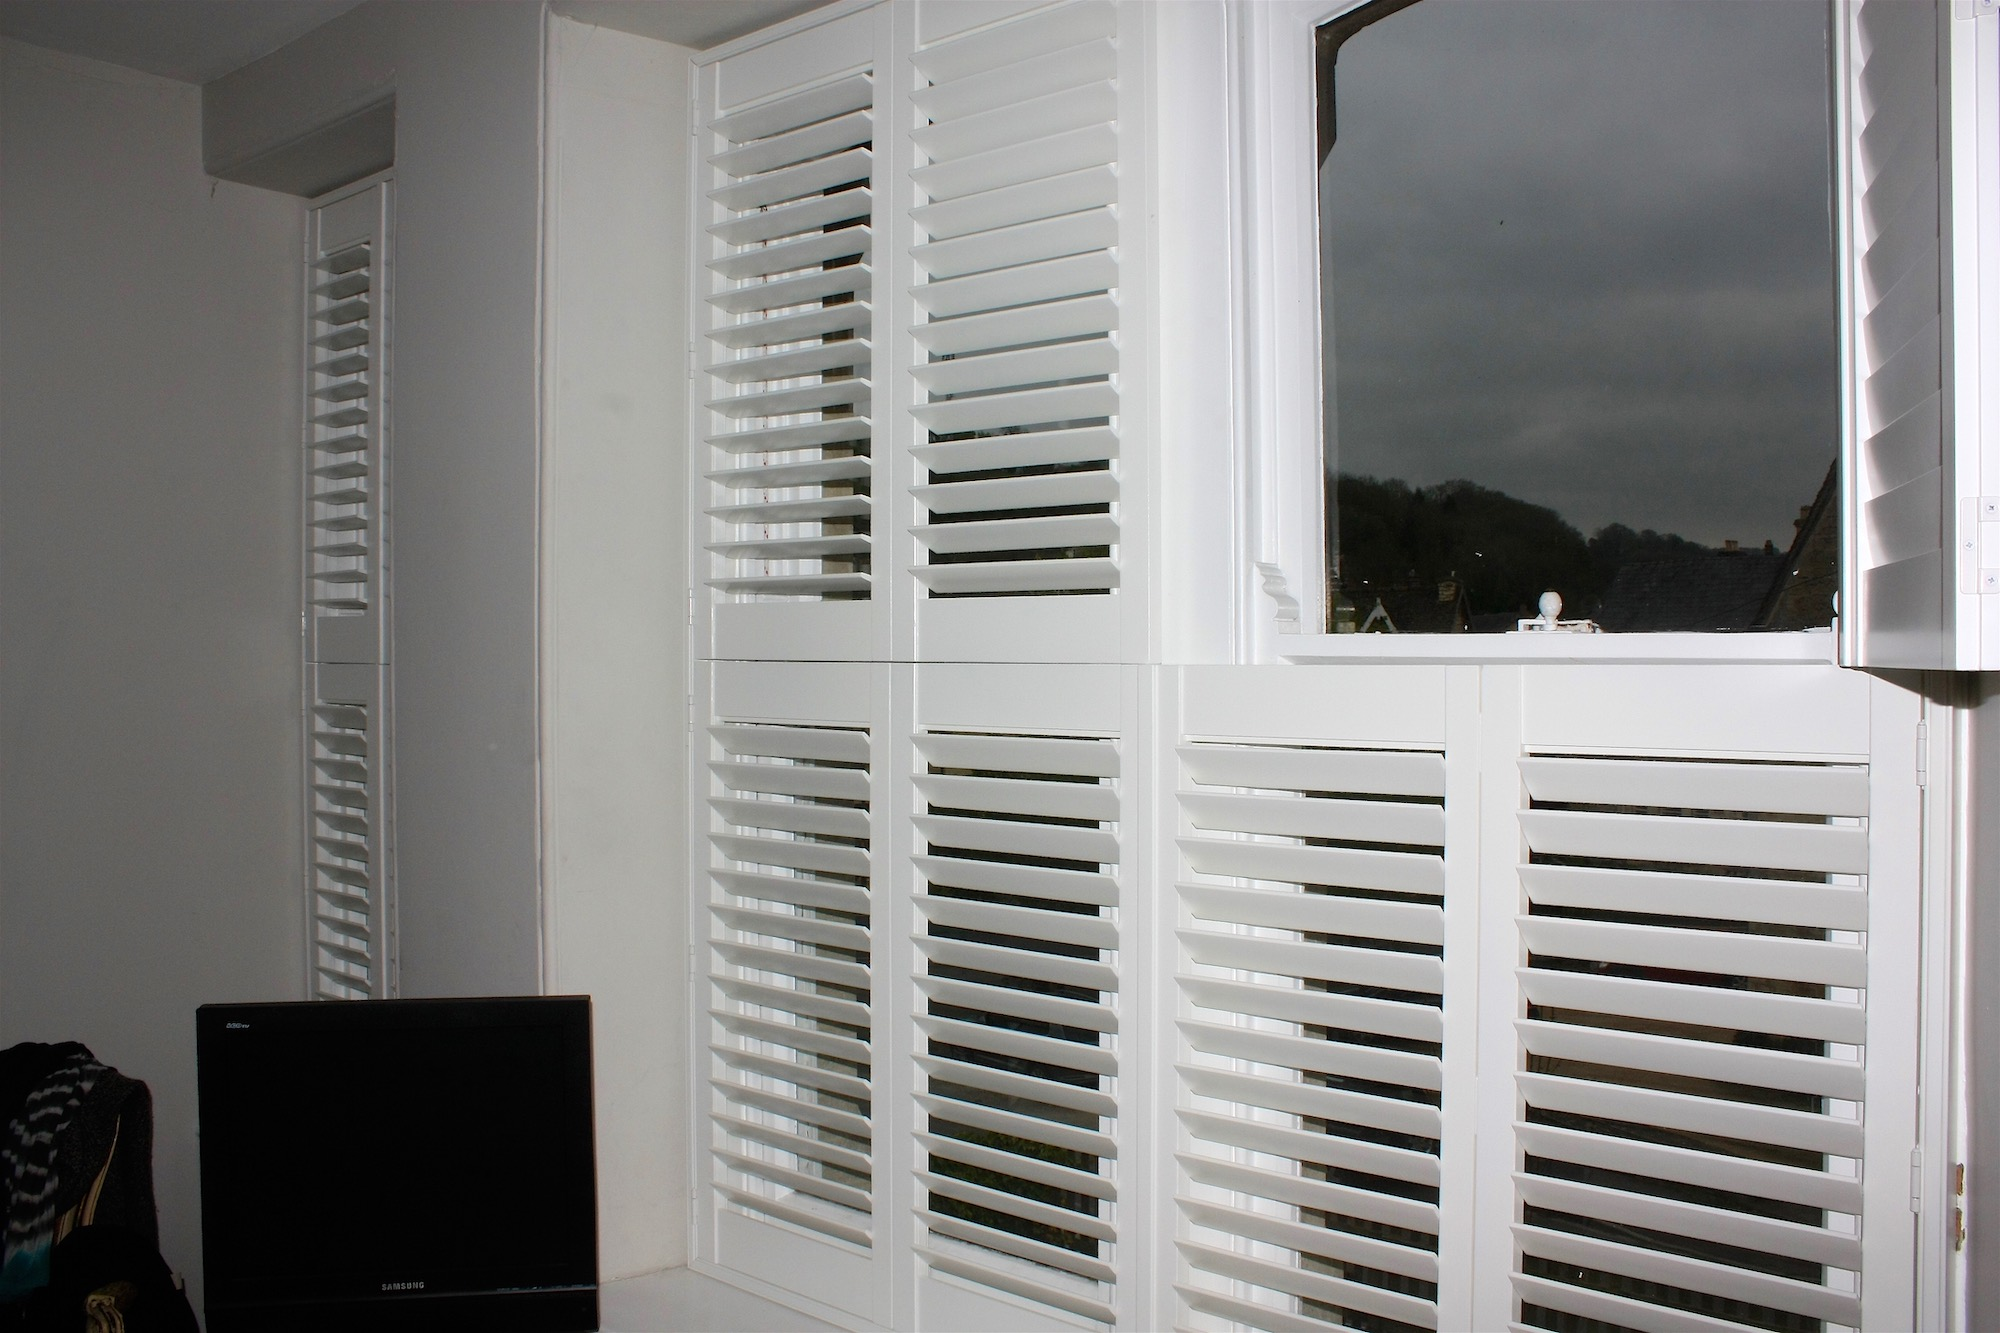 2 Tier On Tier Shutter Sets in Same Room